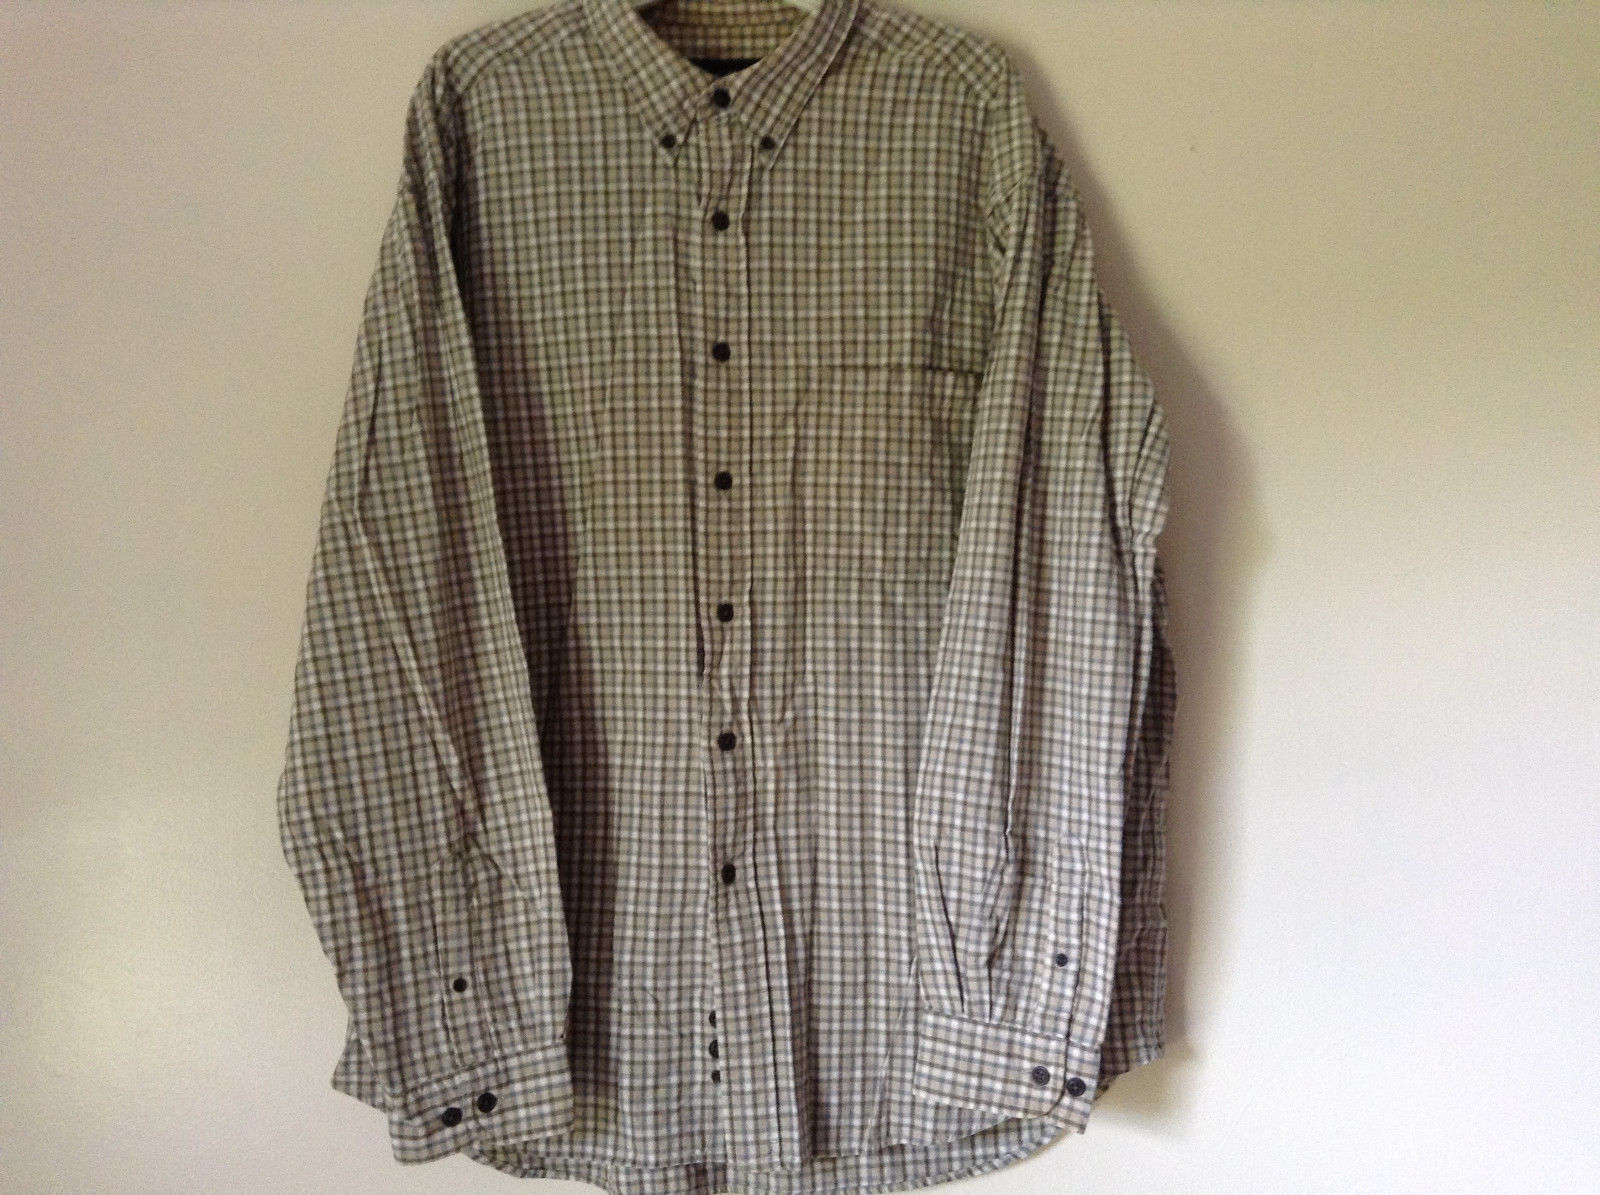 Plaid Long Sleeve Casual Button Down Shirt with Collar by Eddie Bauer Size XL